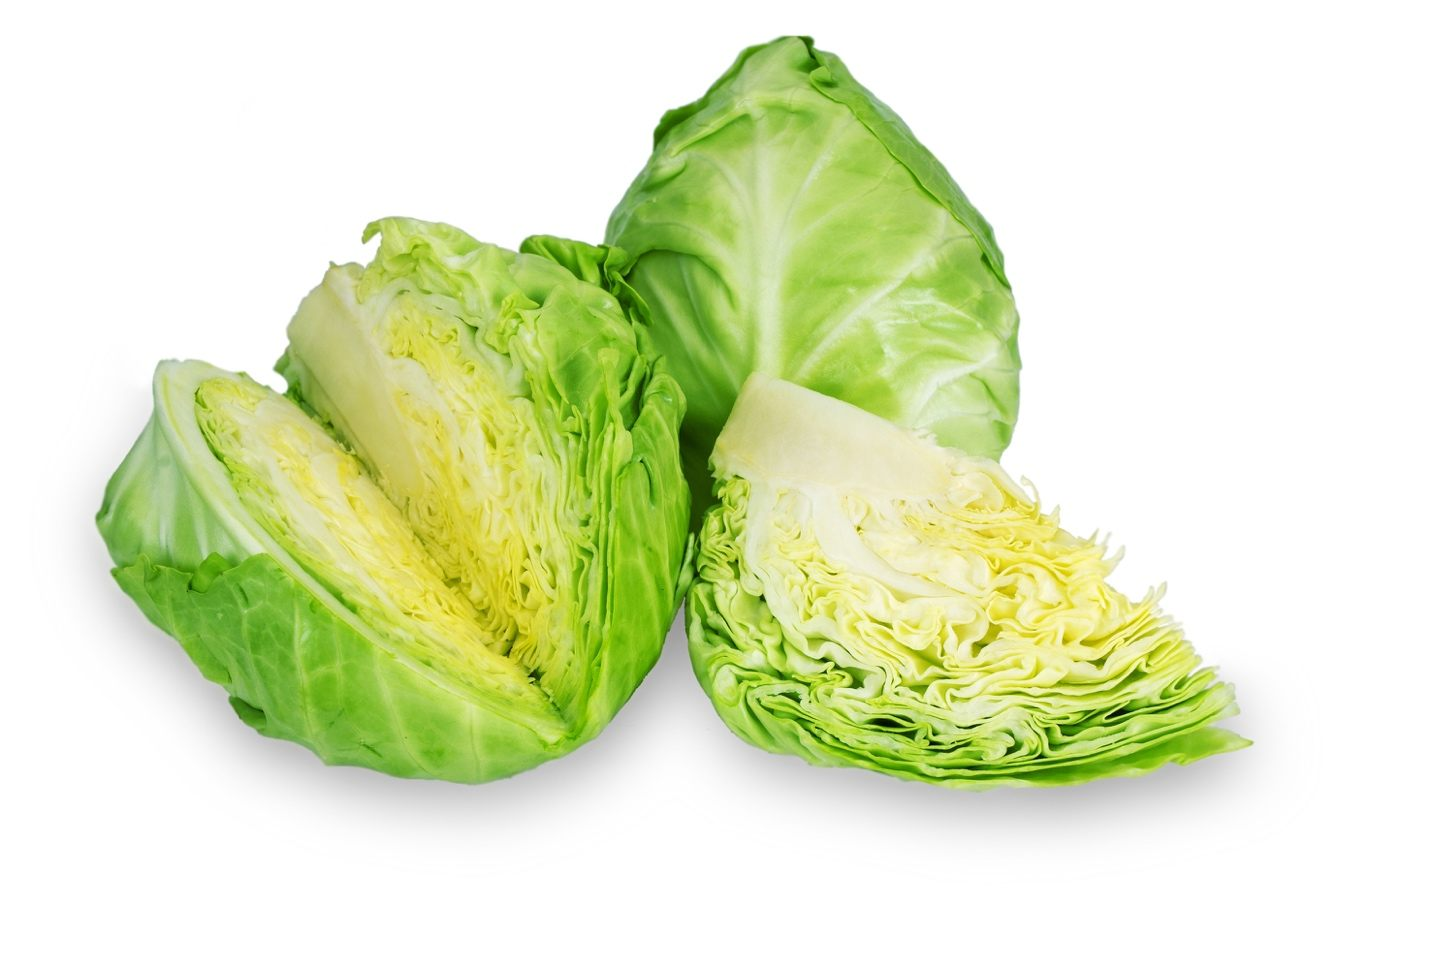 cabbage - Top 20 Natural Foods To Help You Manage Your Diabetes Effectively